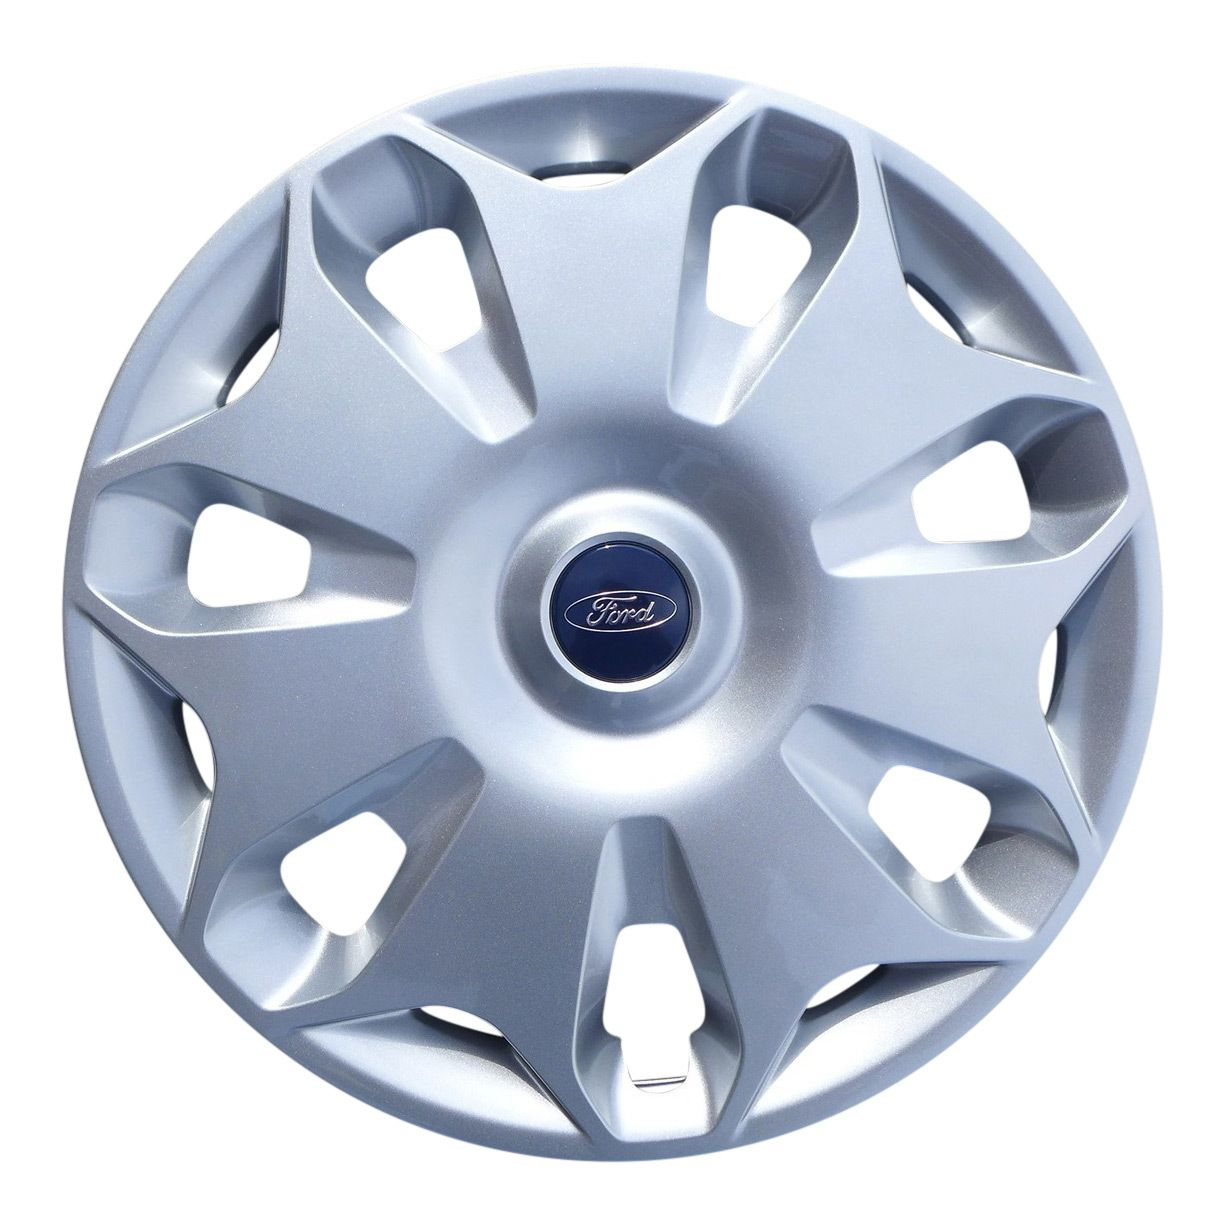 Brand New 2014 2015 Ford Transit Connect Hubcap Wheel Cover 16